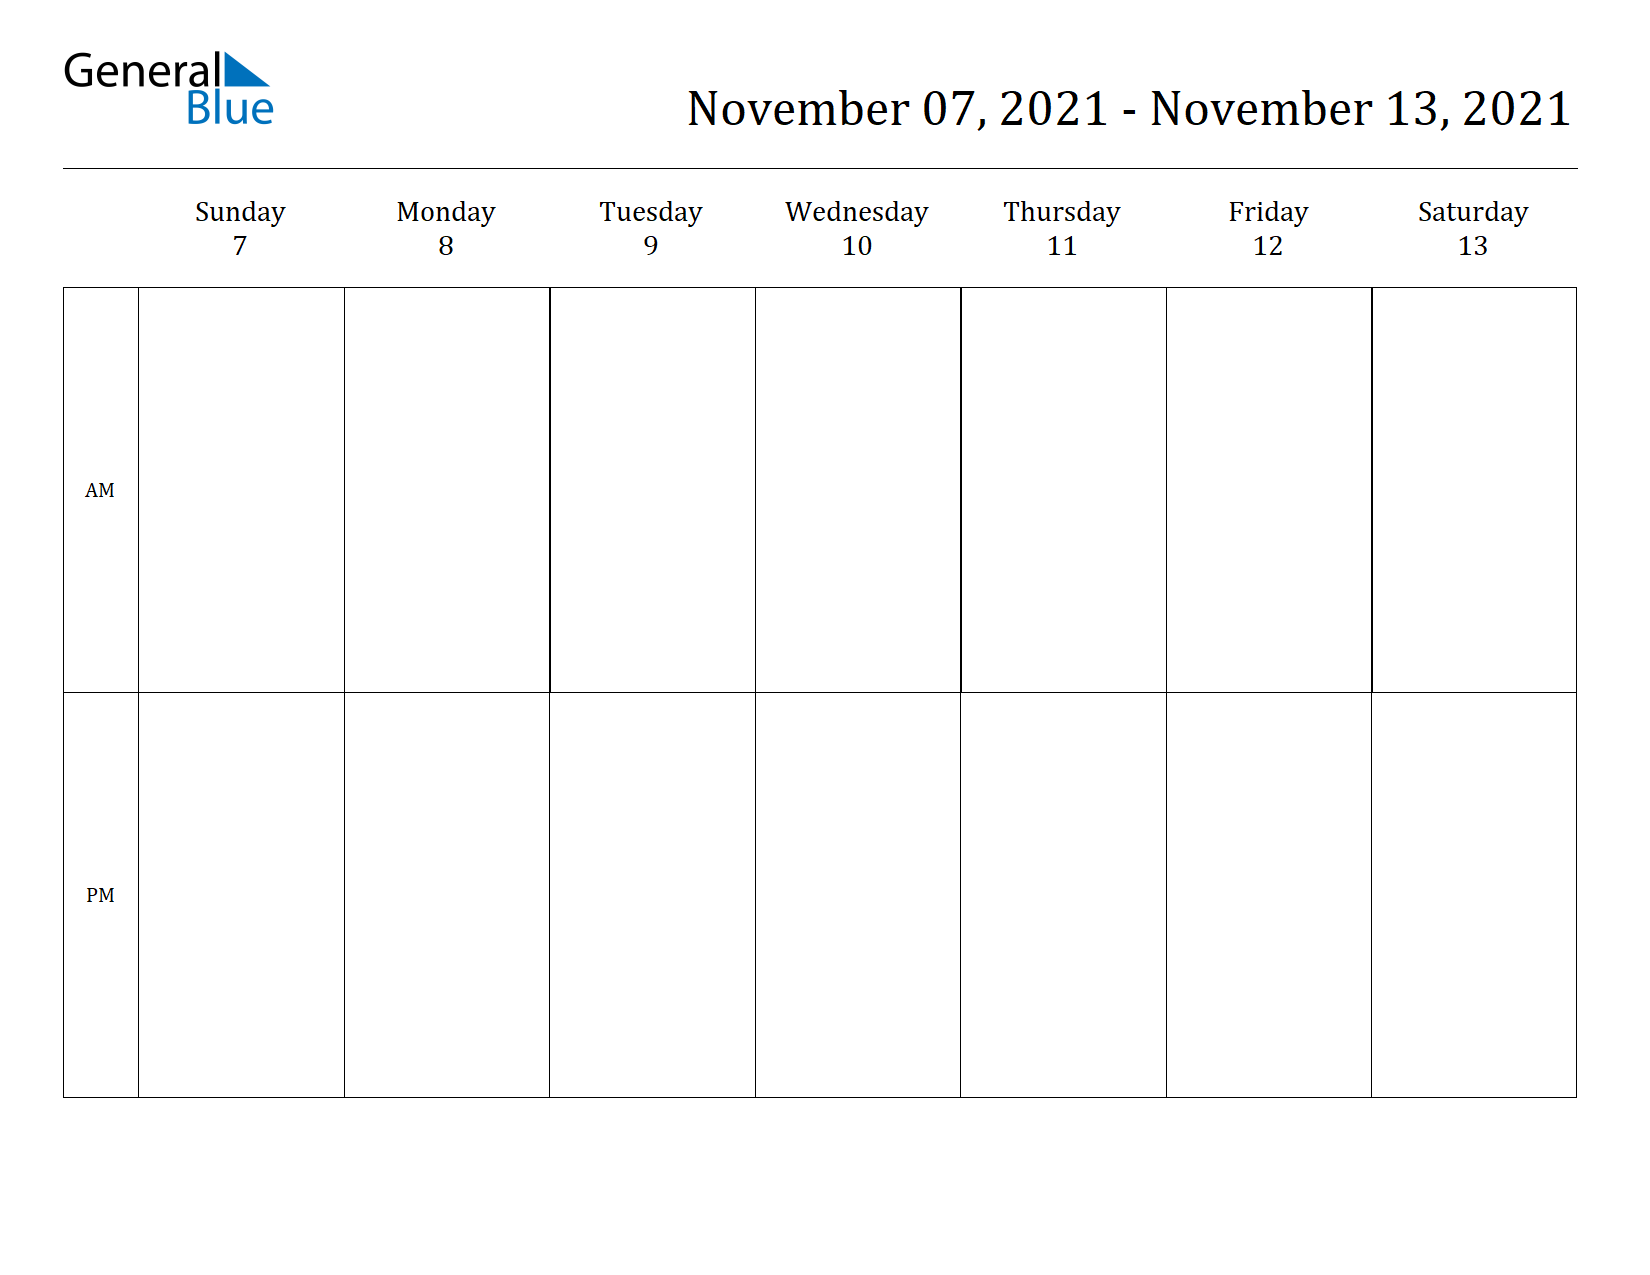 Weekly Calendar for Nov 07, 2021 to Nov 13, 2021